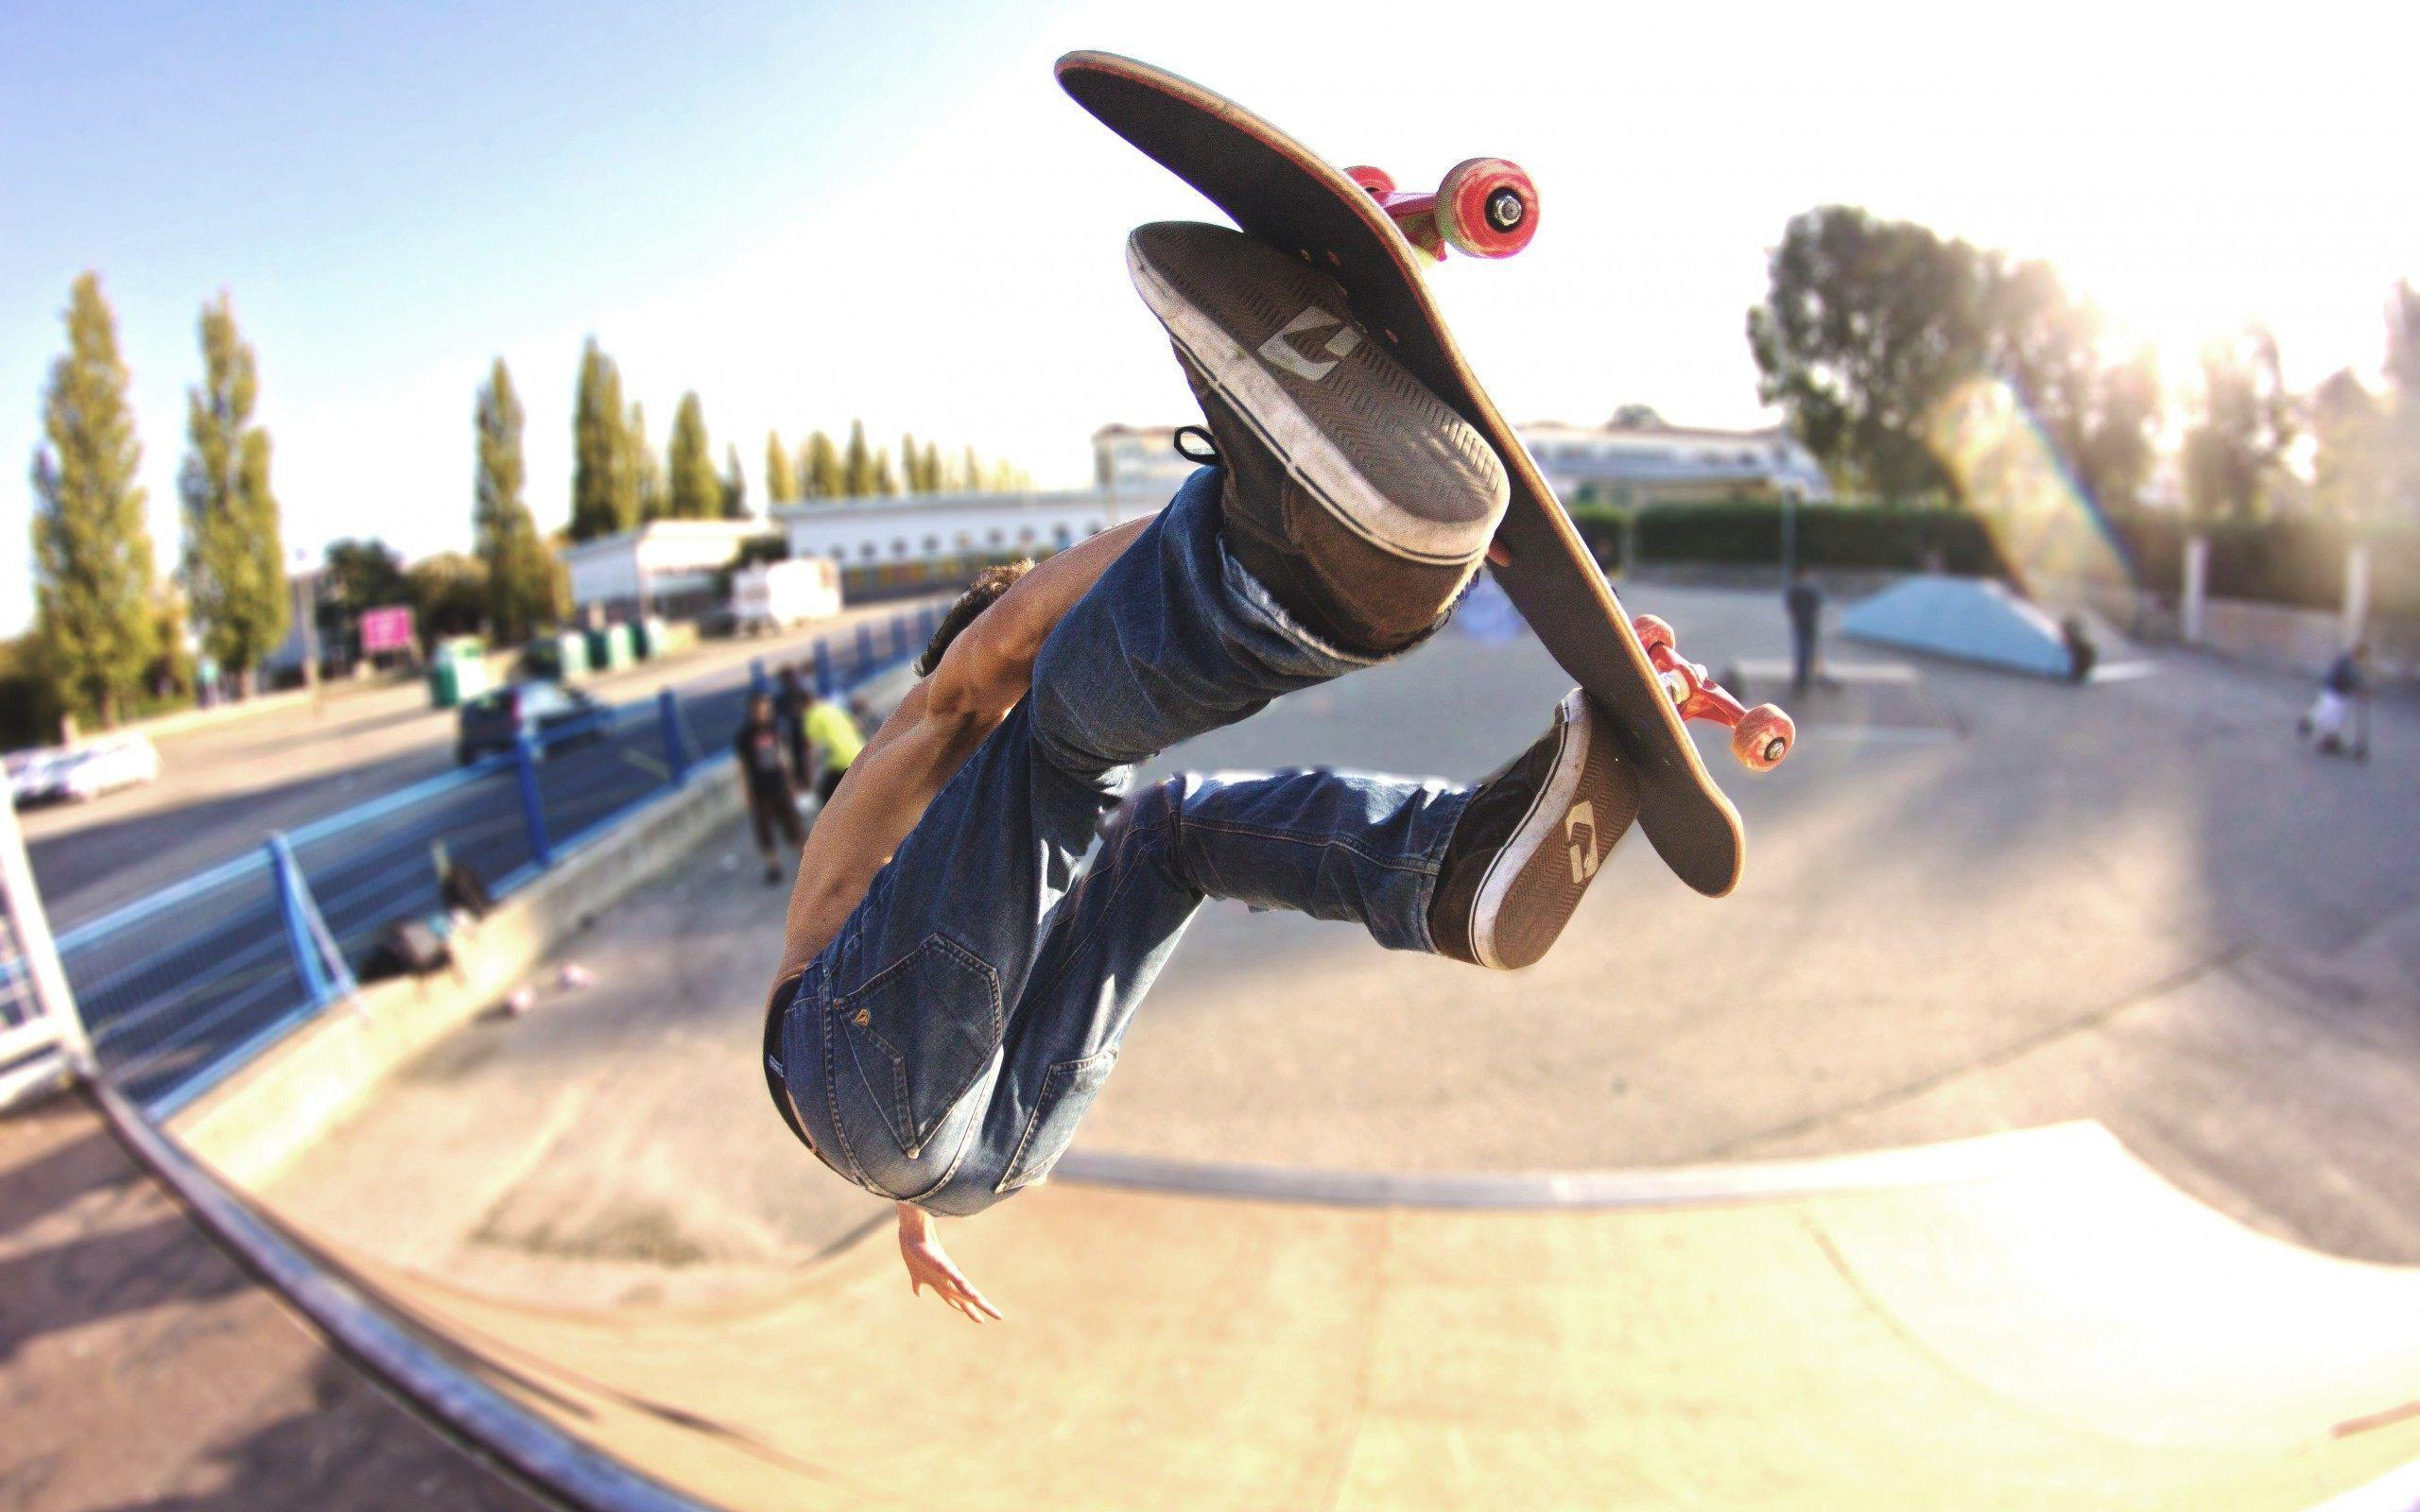 vans skateboard wallpaper 3d - photo #22